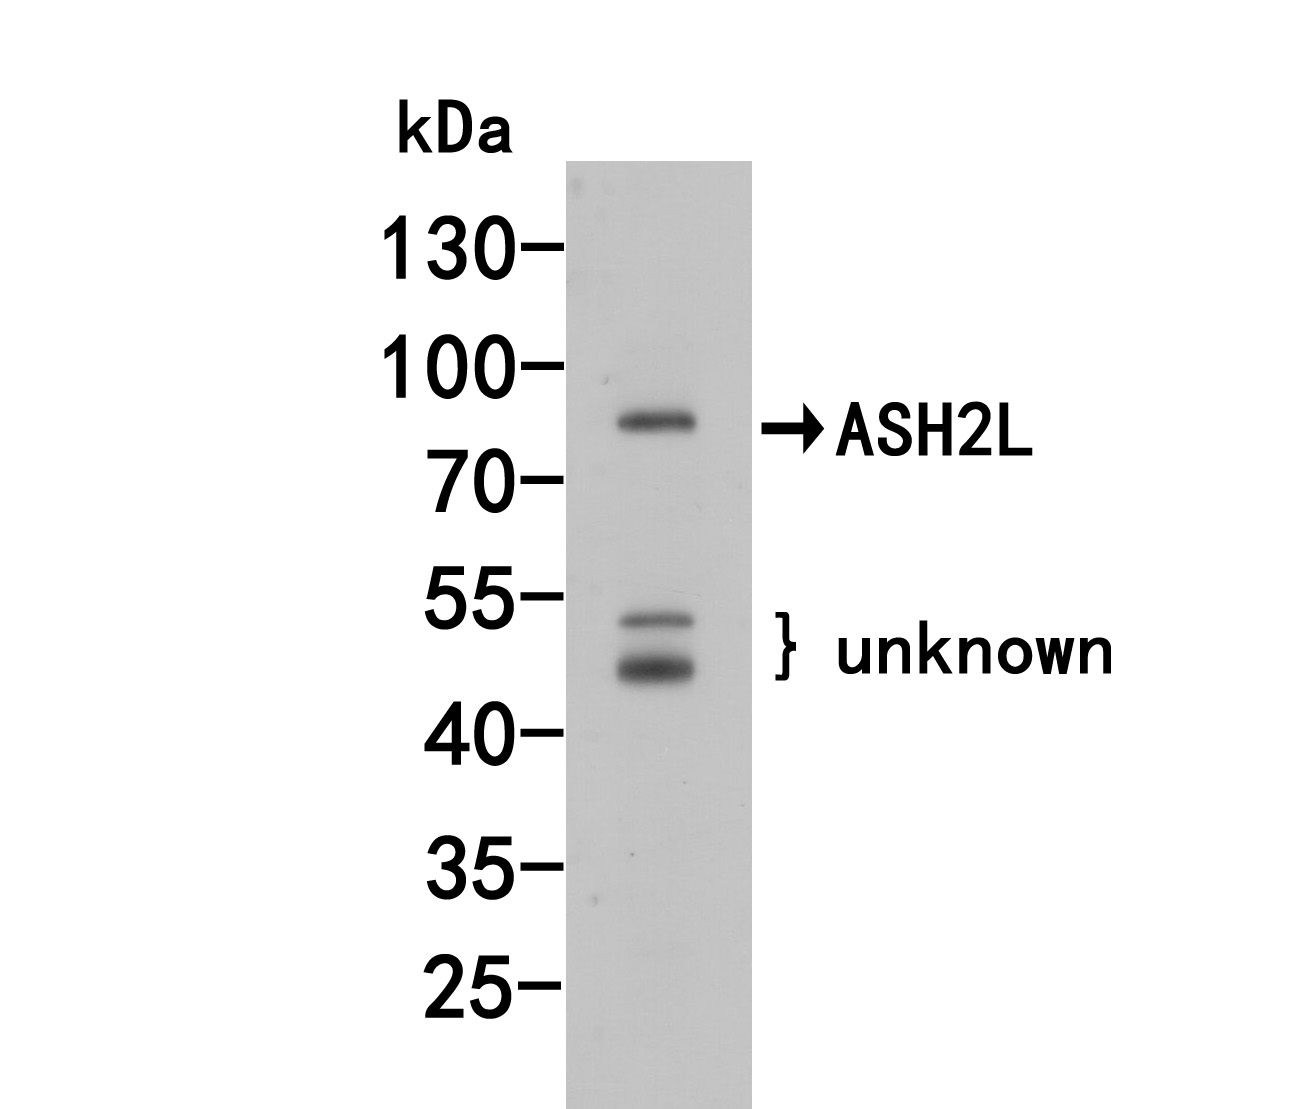 Western blot analysis of ASH2L on PC-12 cell lysates. Proteins were transferred to a PVDF membrane and blocked with 5% BSA in PBS for 1 hour at room temperature. The primary antibody (R1408-1, 1/500) was used in 5% BSA at room temperature for 2 hours. Goat Anti-Rabbit IgG - HRP Secondary Antibody (HA1001) at 1:5,000 dilution was used for 1 hour at room temperature.